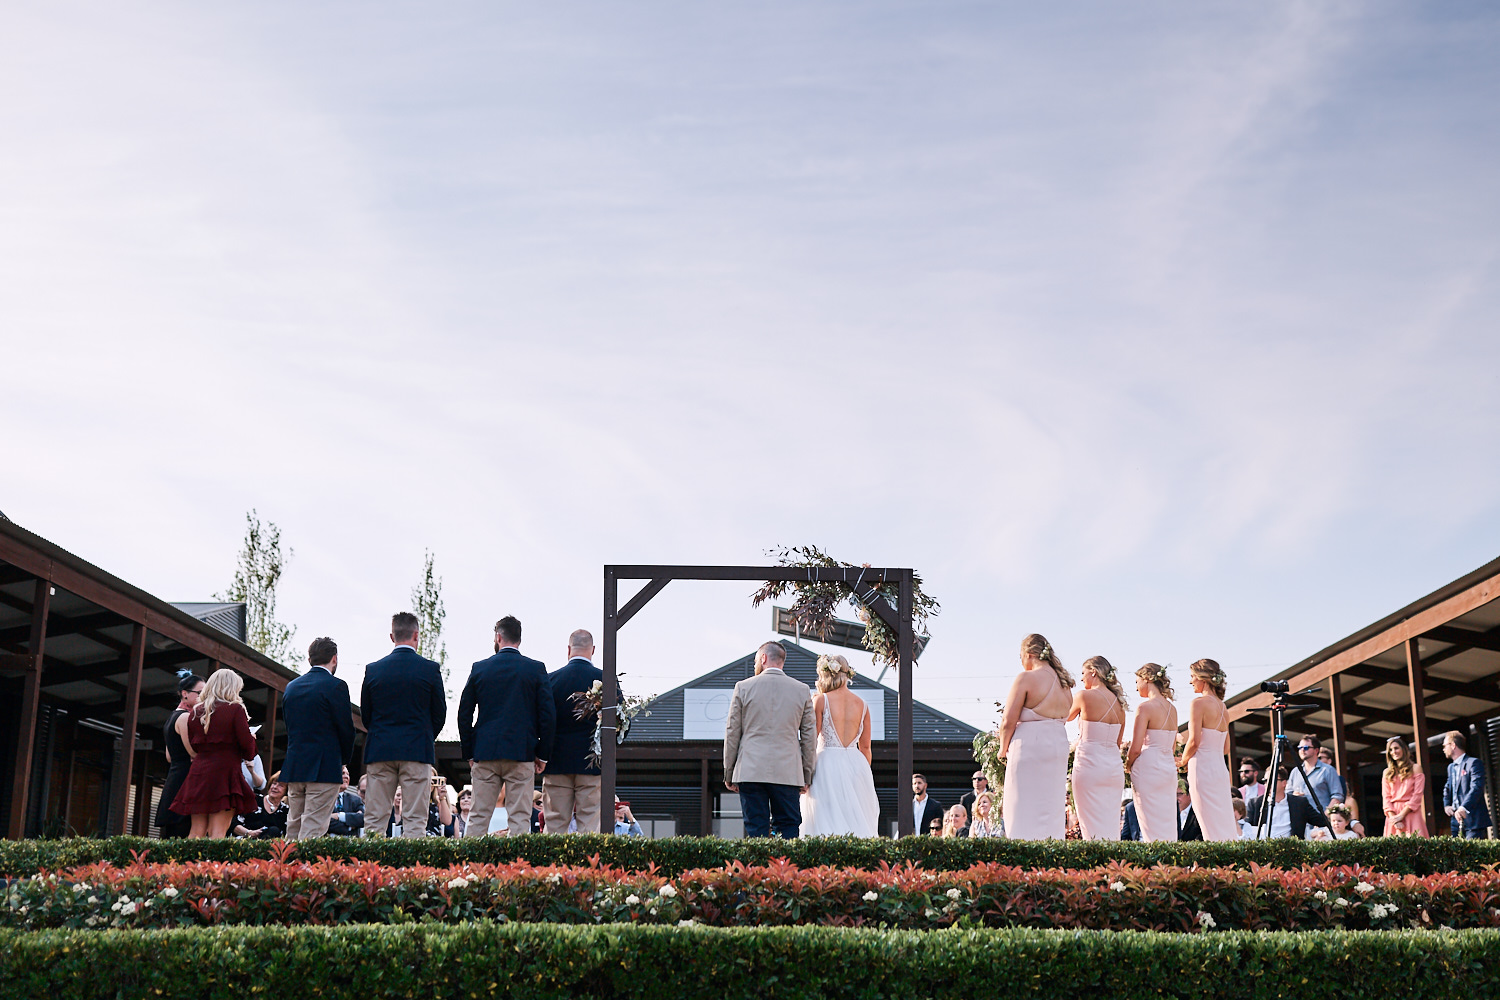 Wedding ceremony at Estate Tuscany Pokolbin in the Hunter Valley by wedding photographer Joshua Witheford